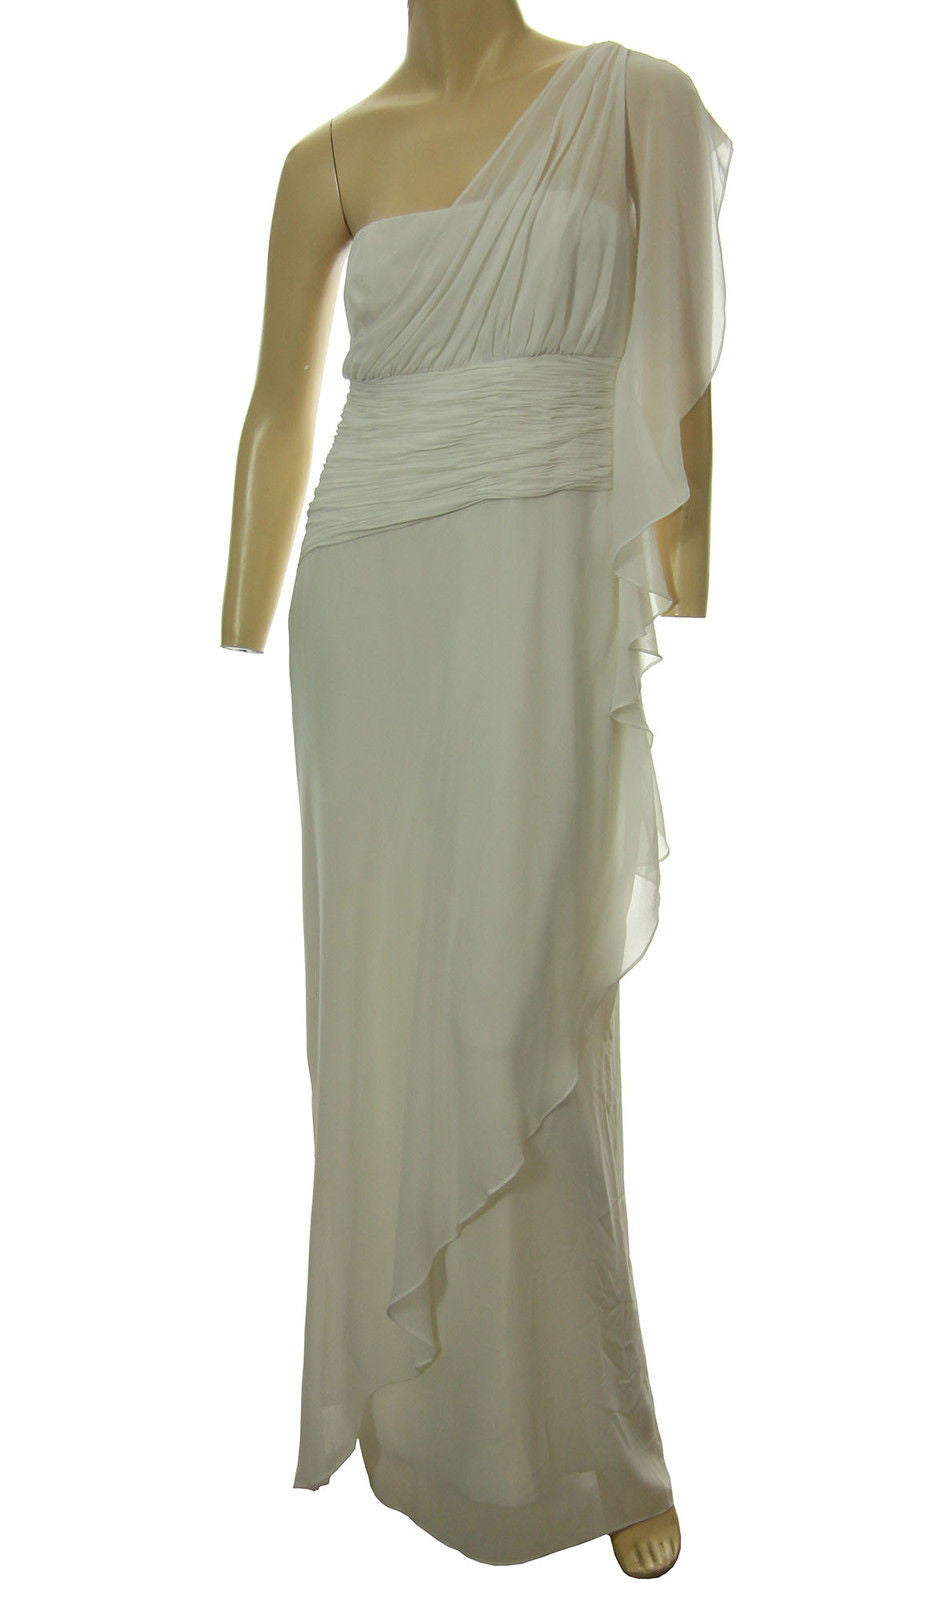 Ralph Lauren White One Shoulder Gathered Full Length Formal Gown Dress